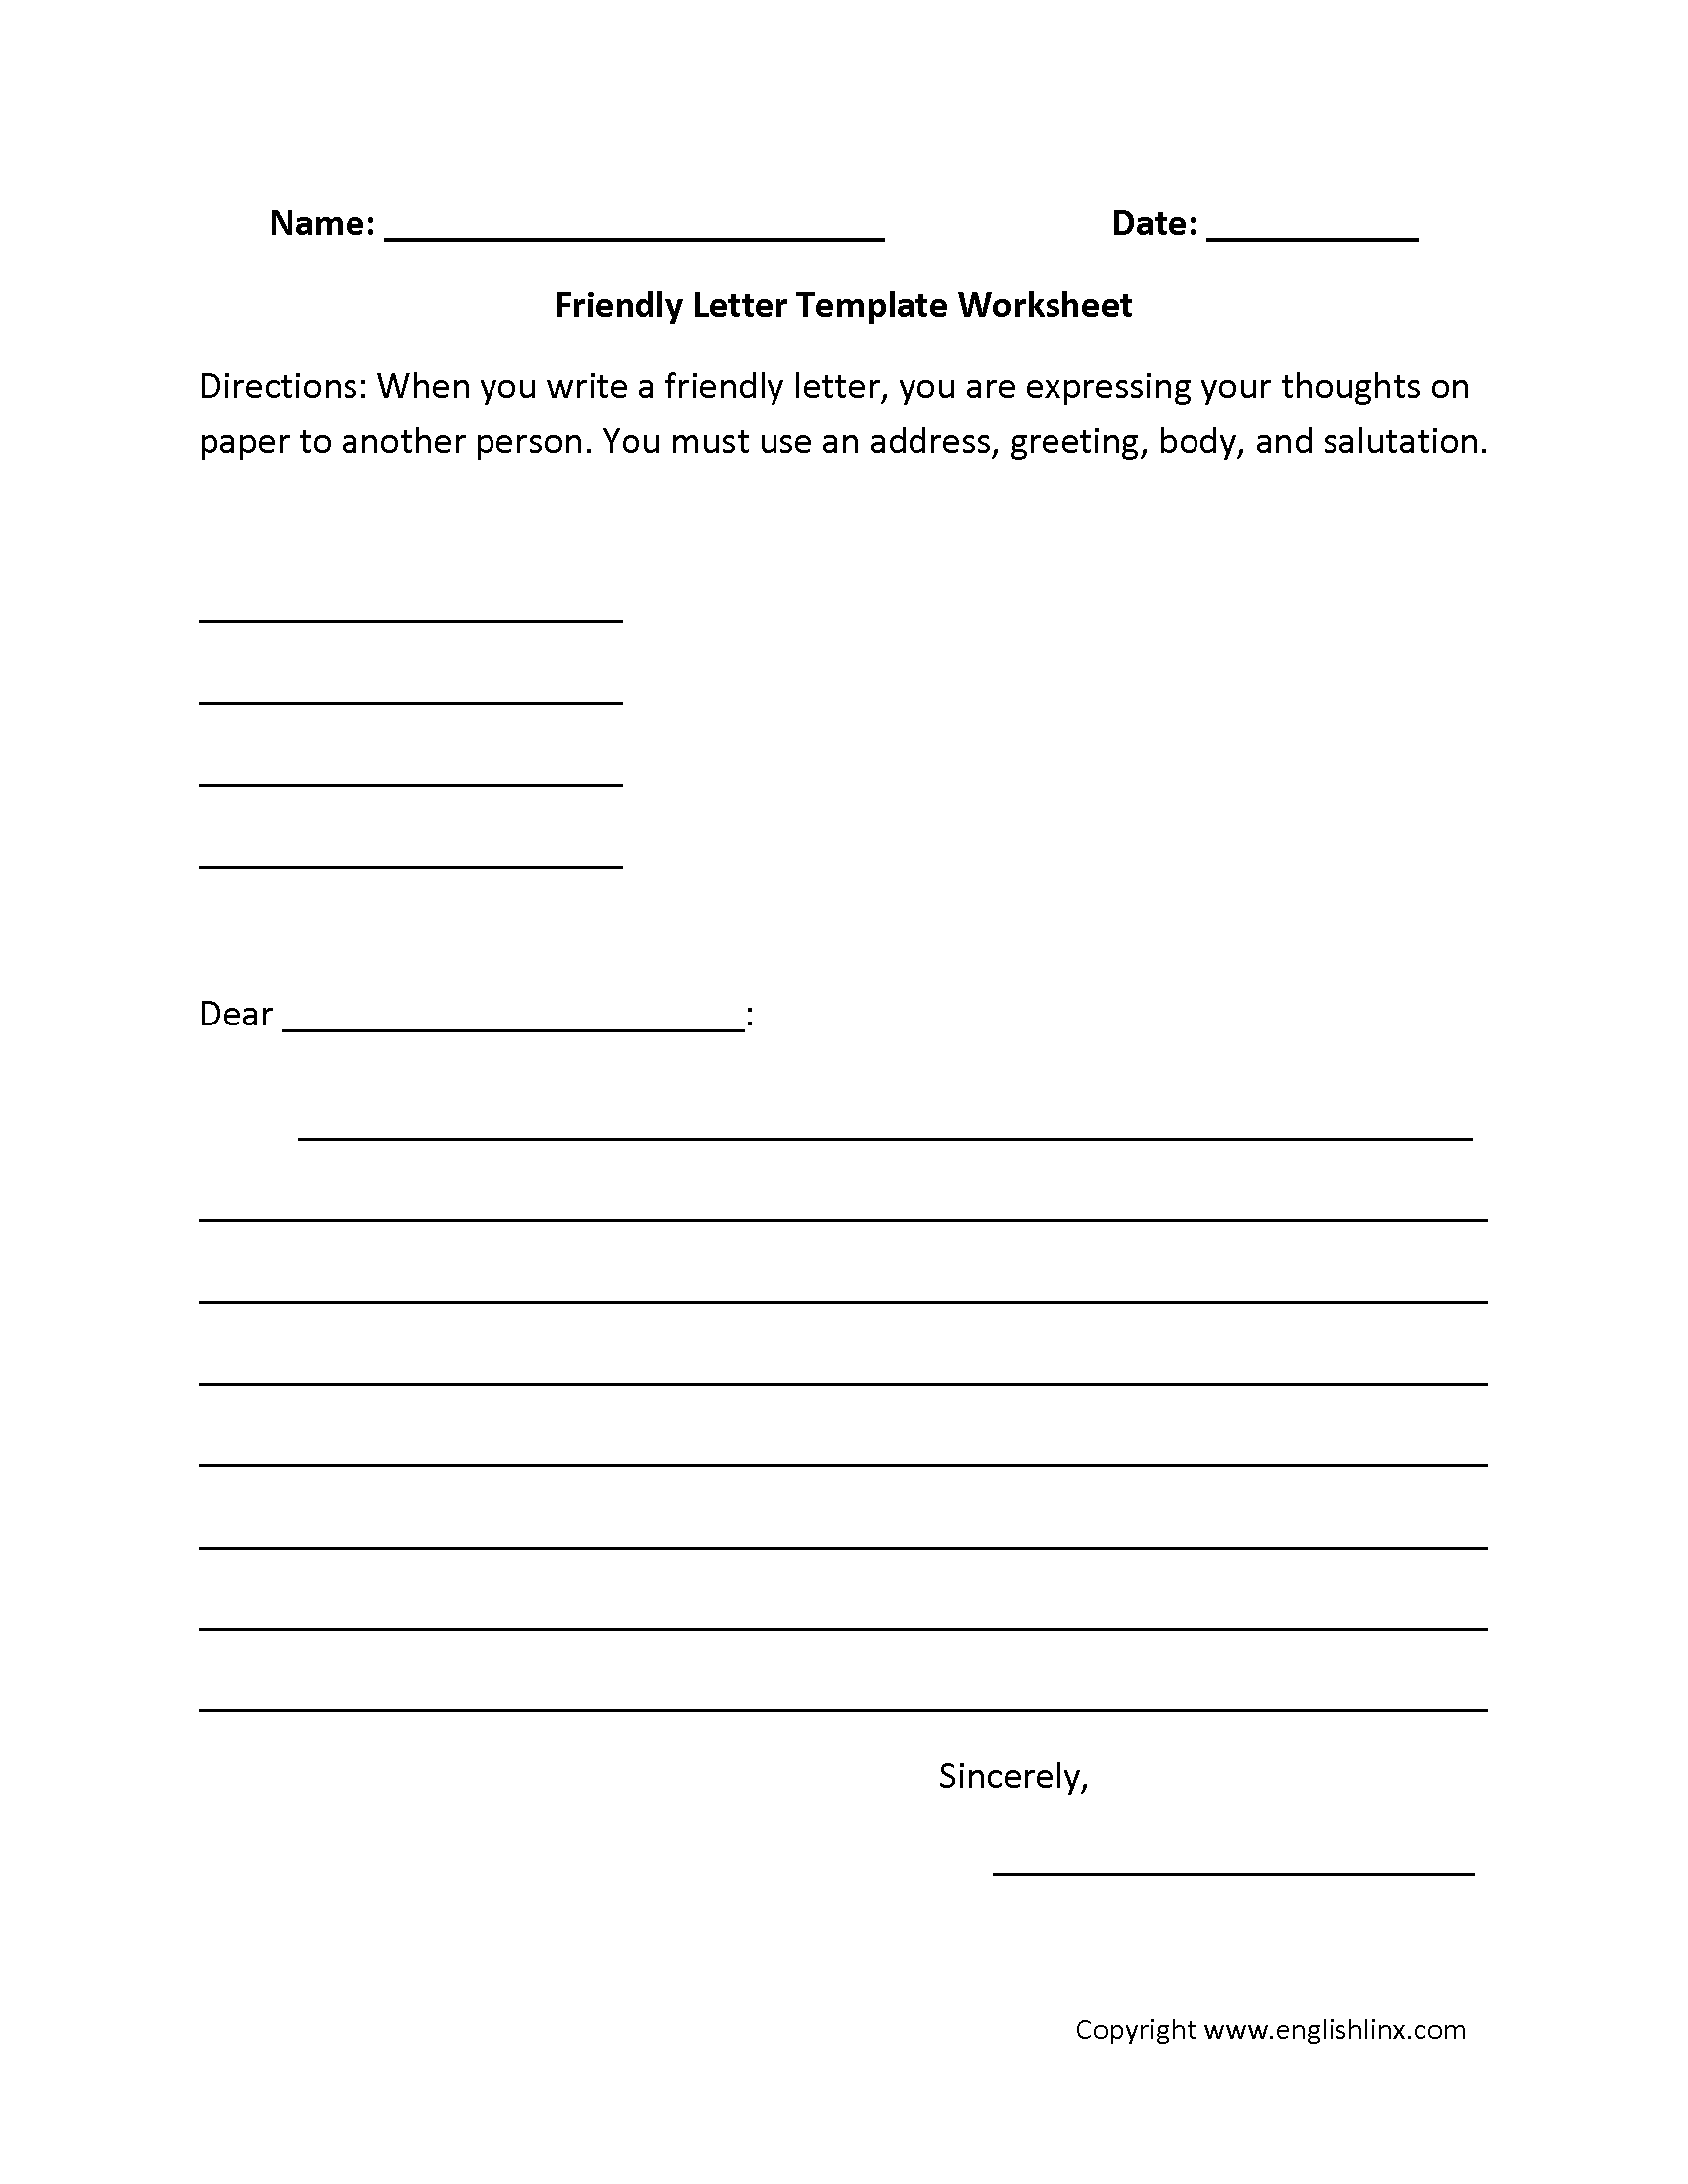 Printables Writing A Friendly Letter Worksheet letter writing worksheets friendly worksheets